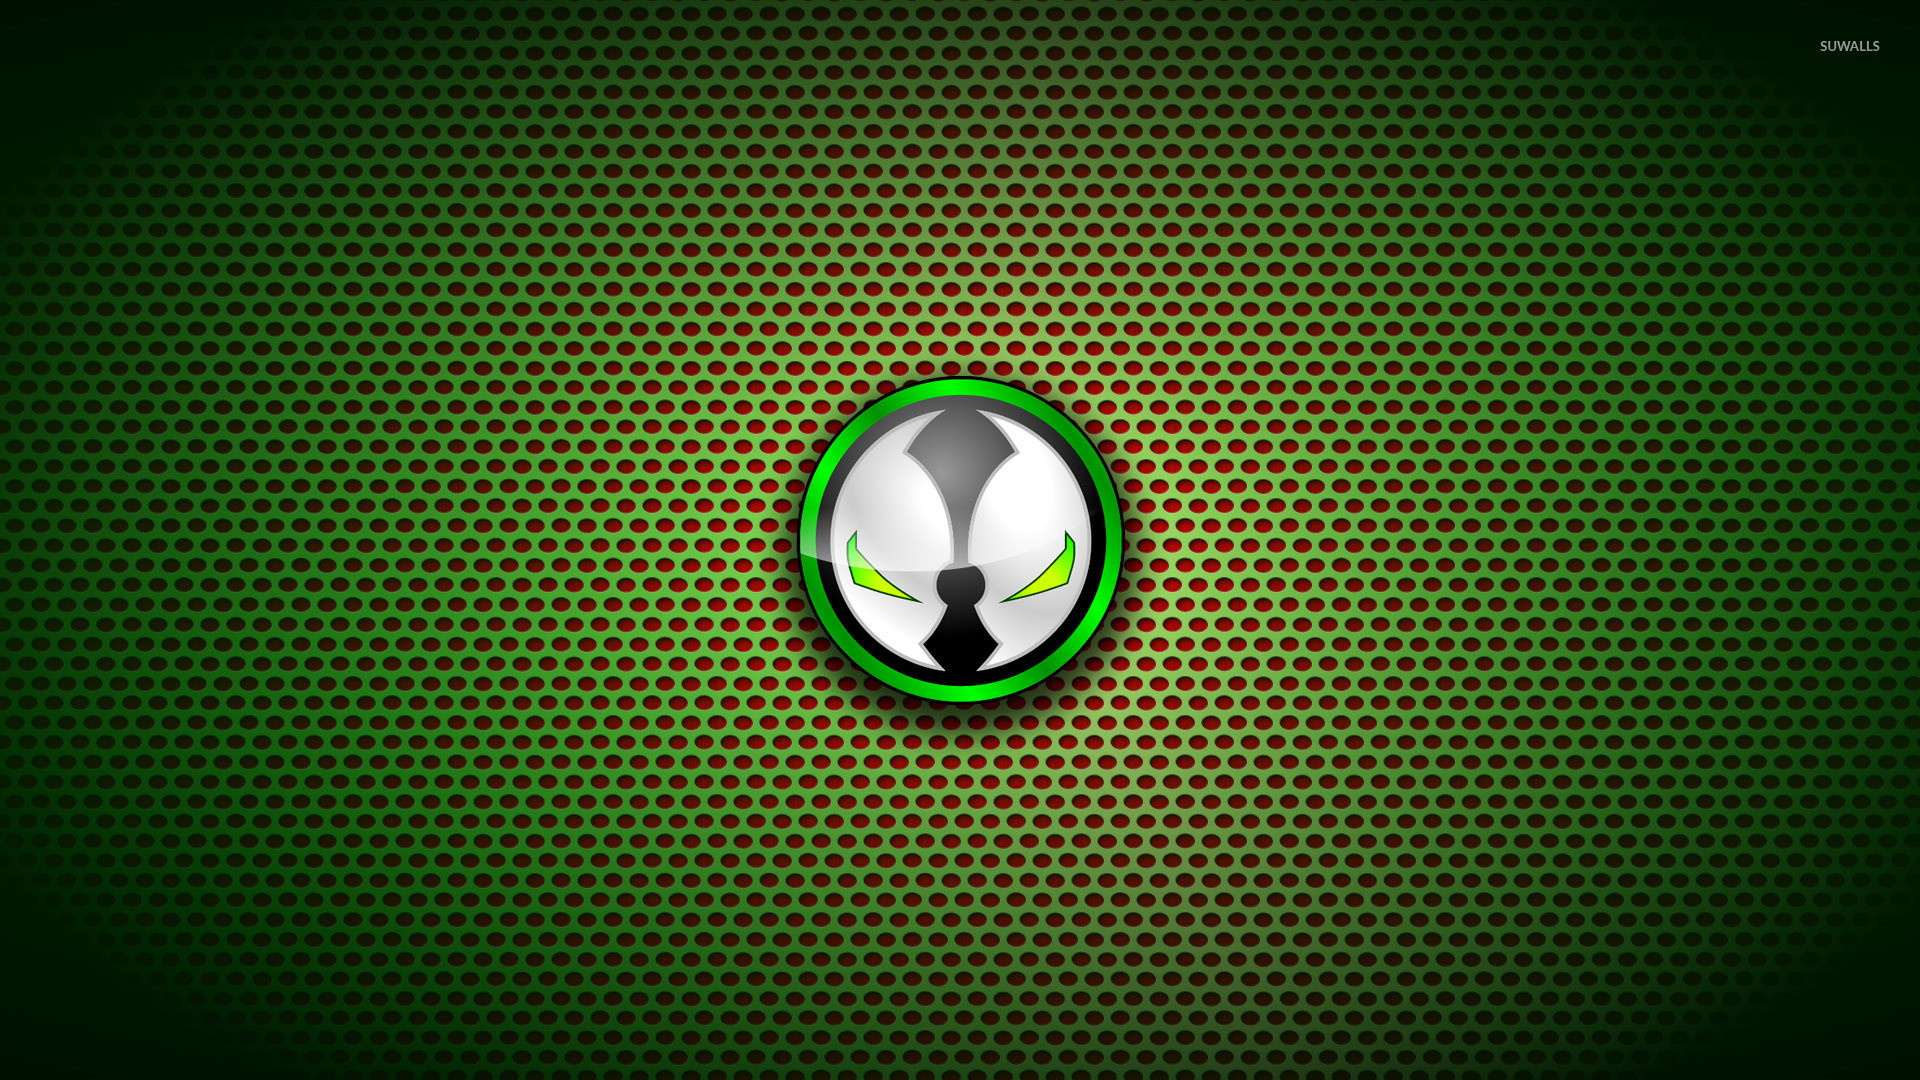 Marvin the Martian Wallpapers